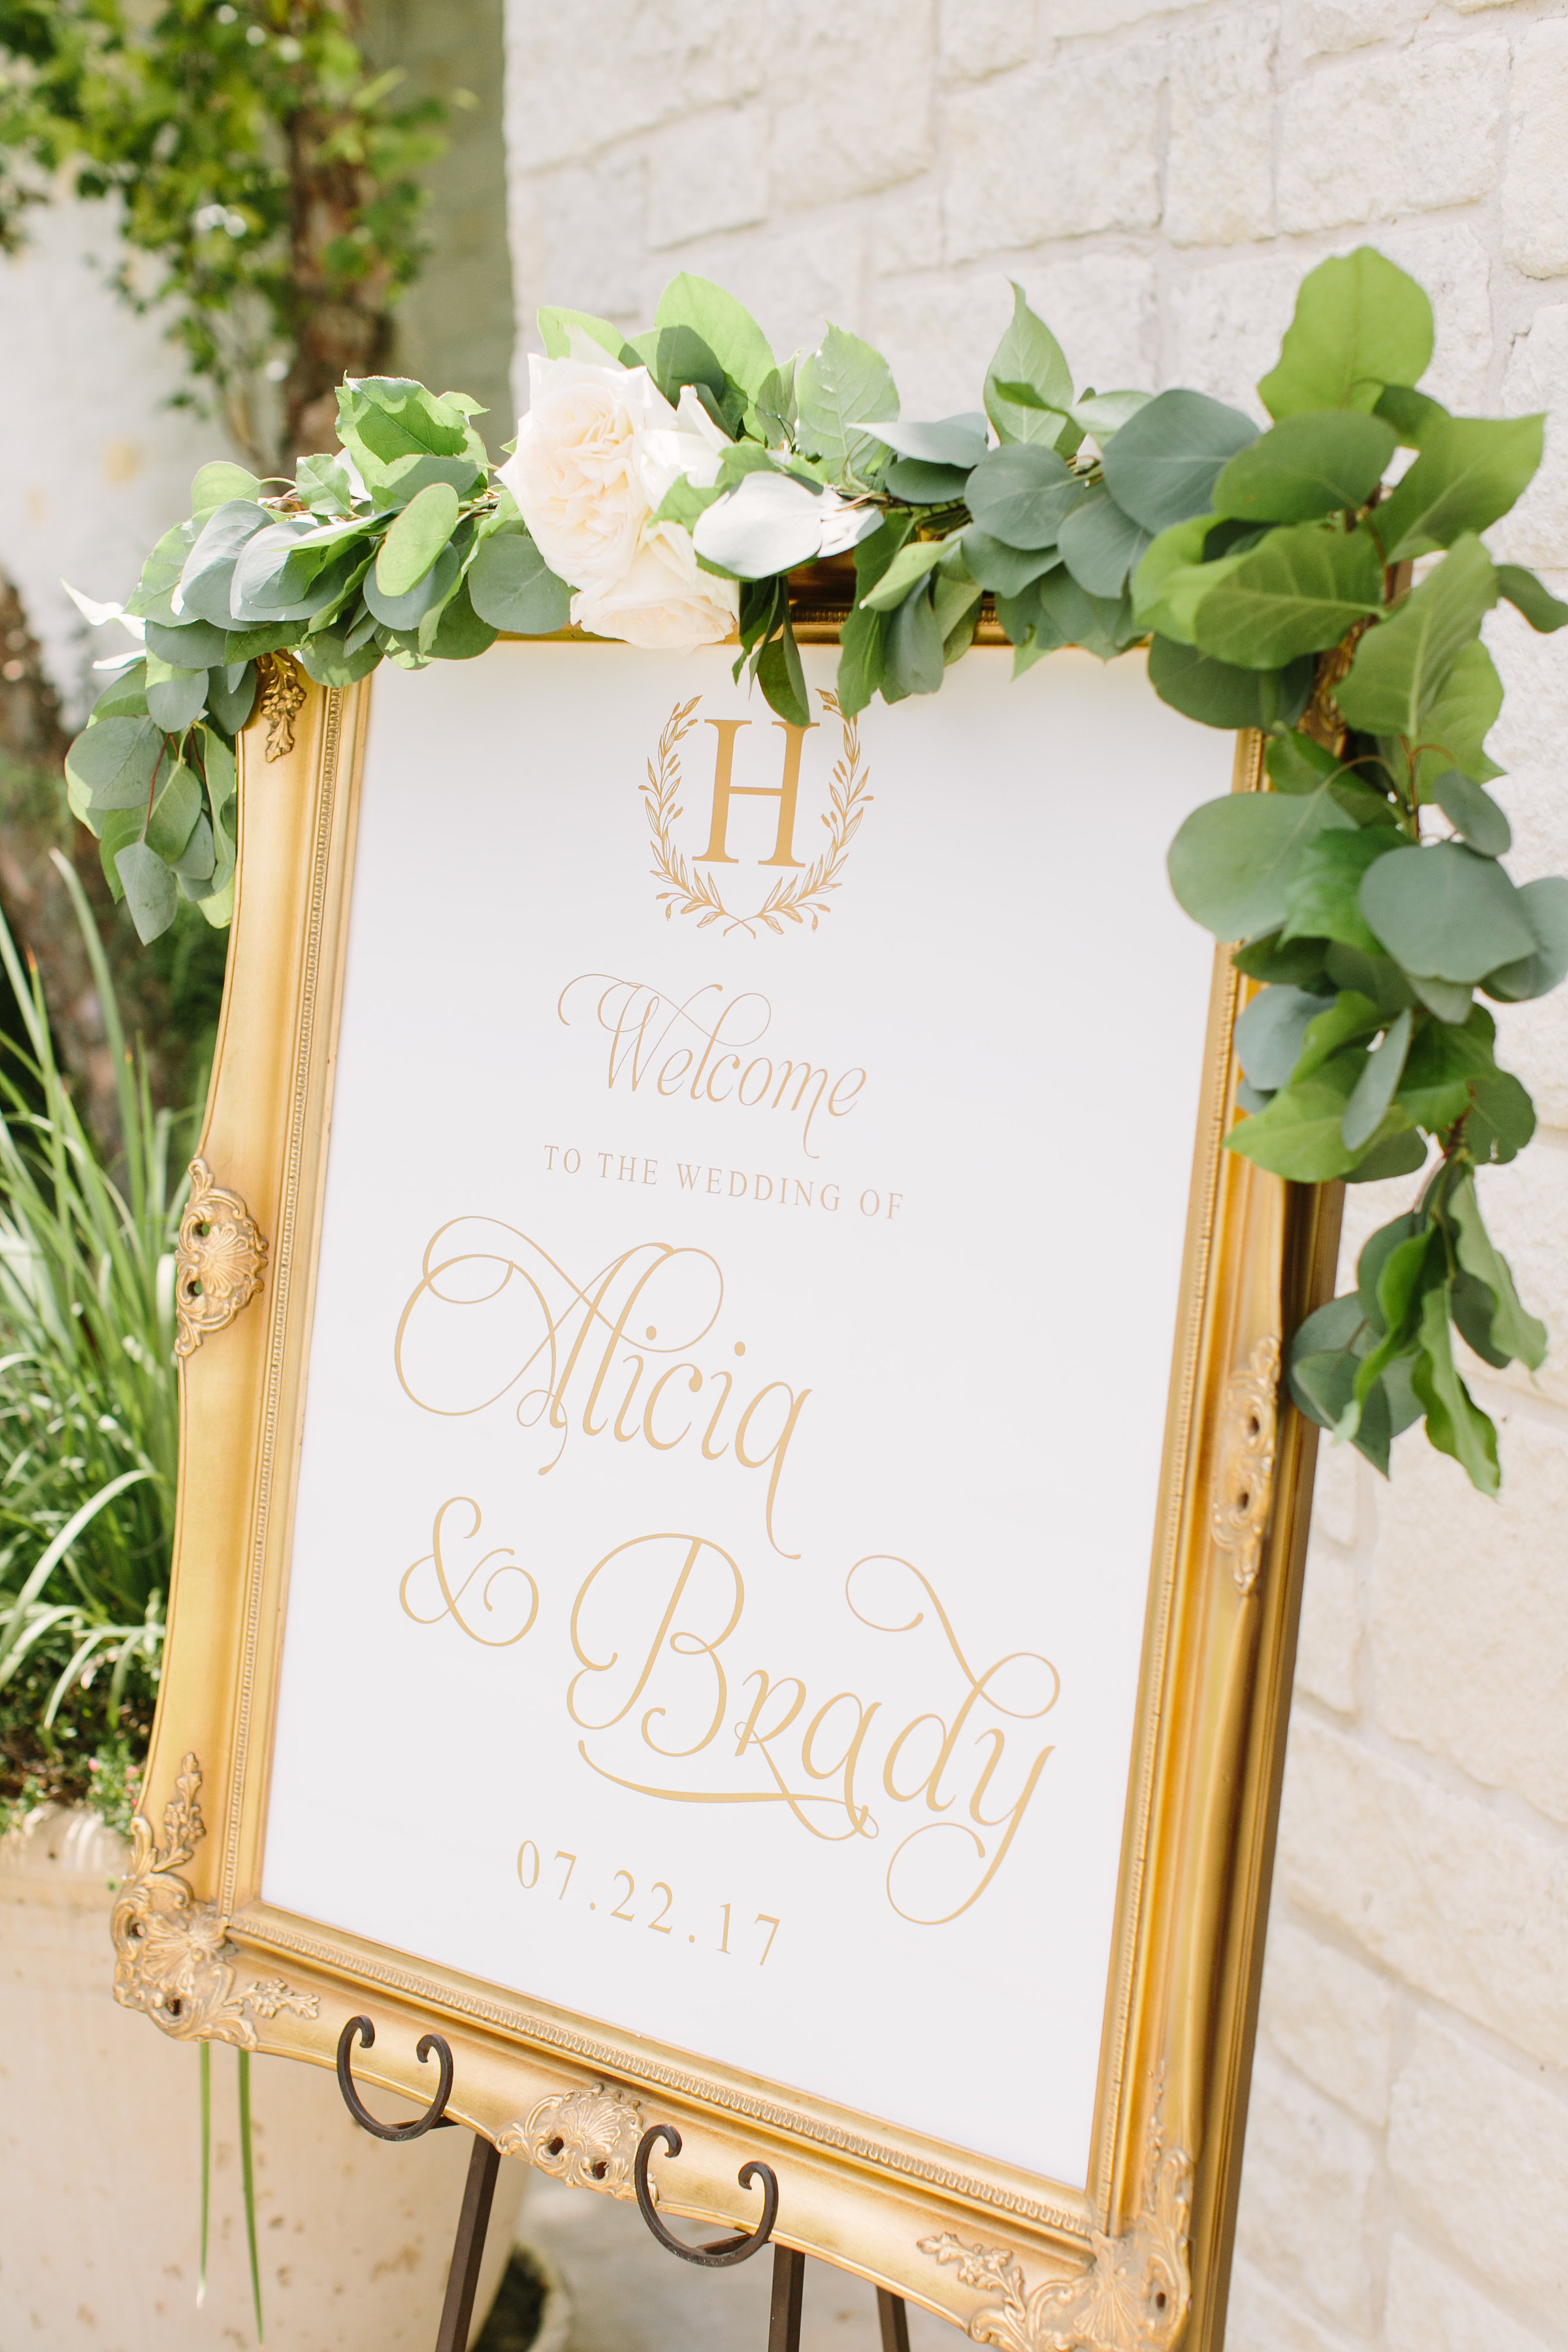 welcome-sign-gold-elegant-white-greenery-garland-by-maxit-flower-design-in-houston-texas